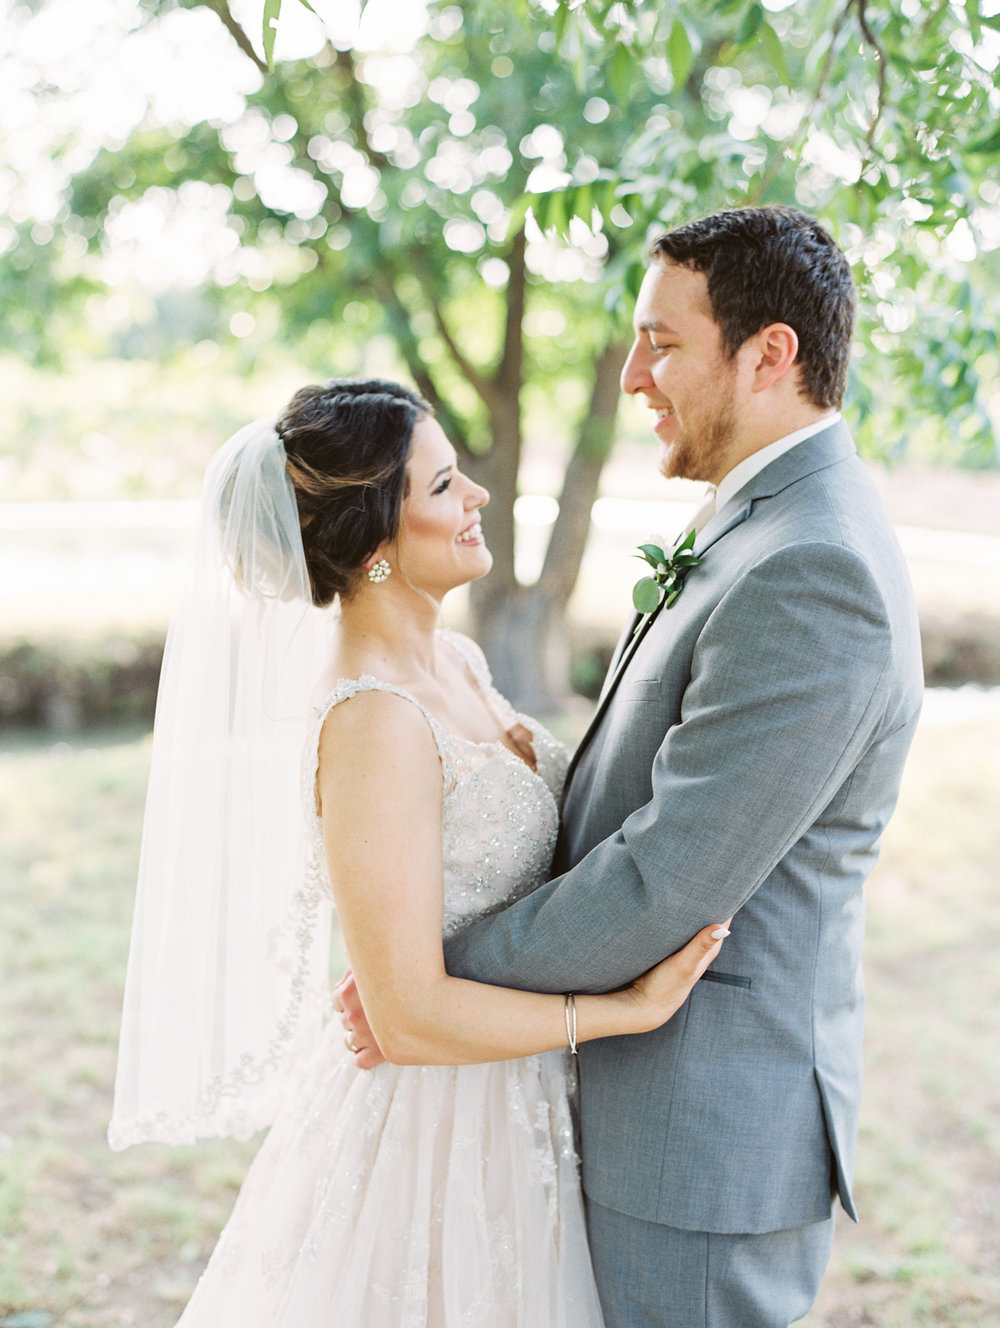 Elegant Spring Vineyard Wedding | Film Wedding Photographer | Austin Wedding Photographer | Bride and Groom Portrait | Britni Dean Photography // britnidean.com